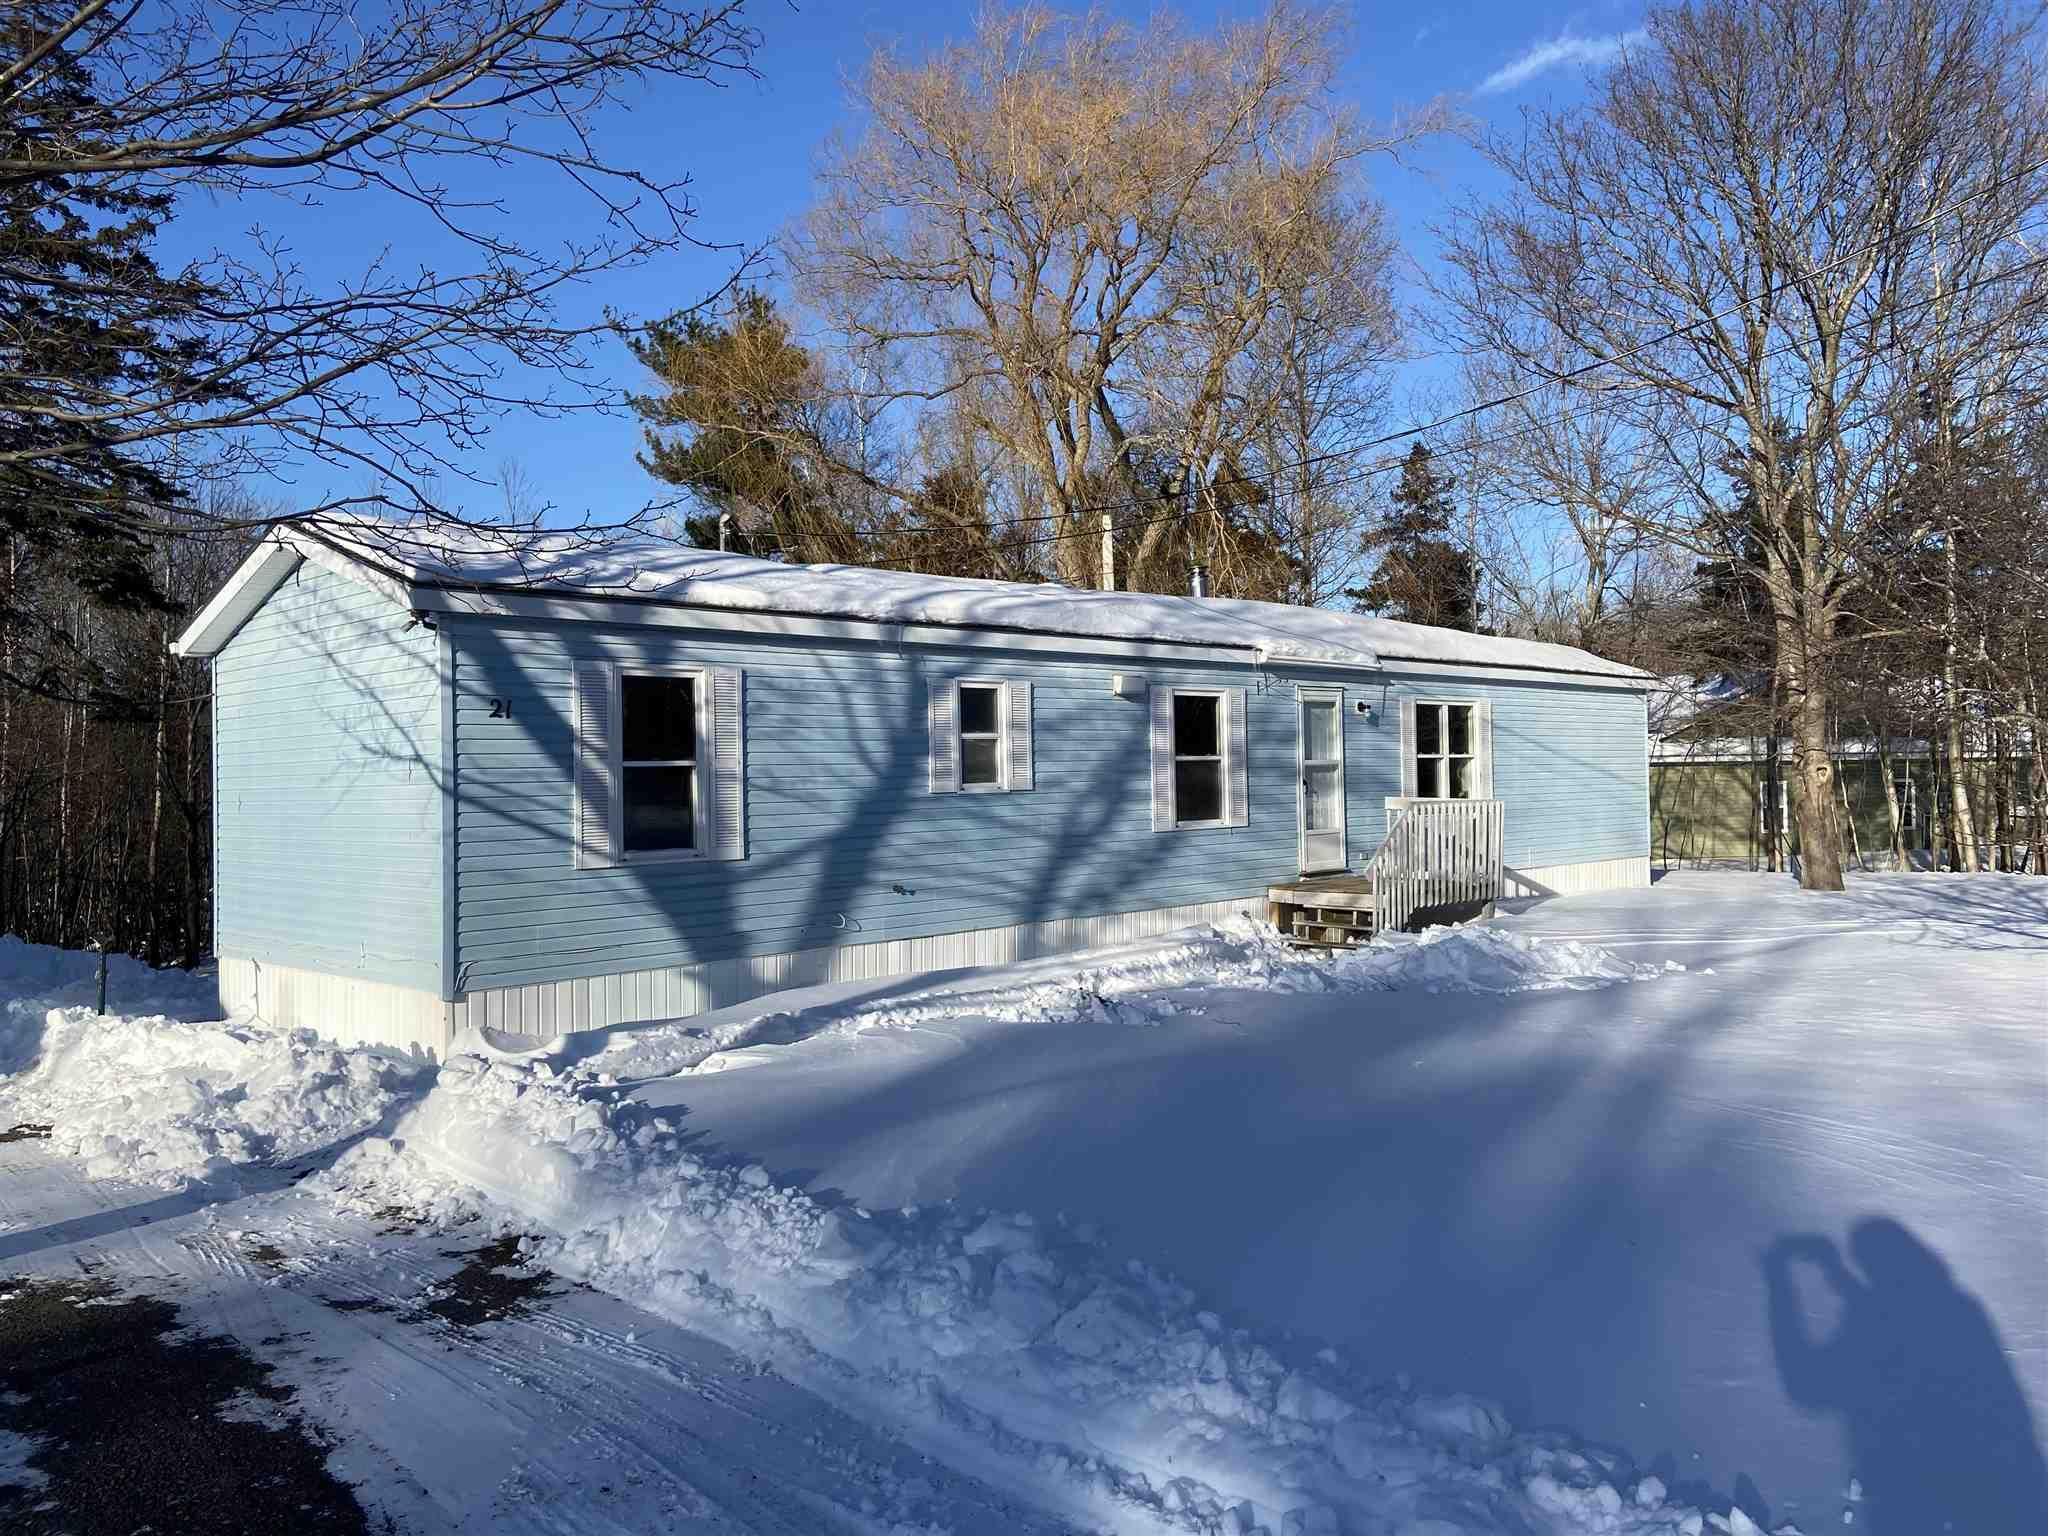 Main Photo: 21 A Smith Lane in Abercrombie: 108-Rural Pictou County Residential for sale (Northern Region)  : MLS®# 202102051